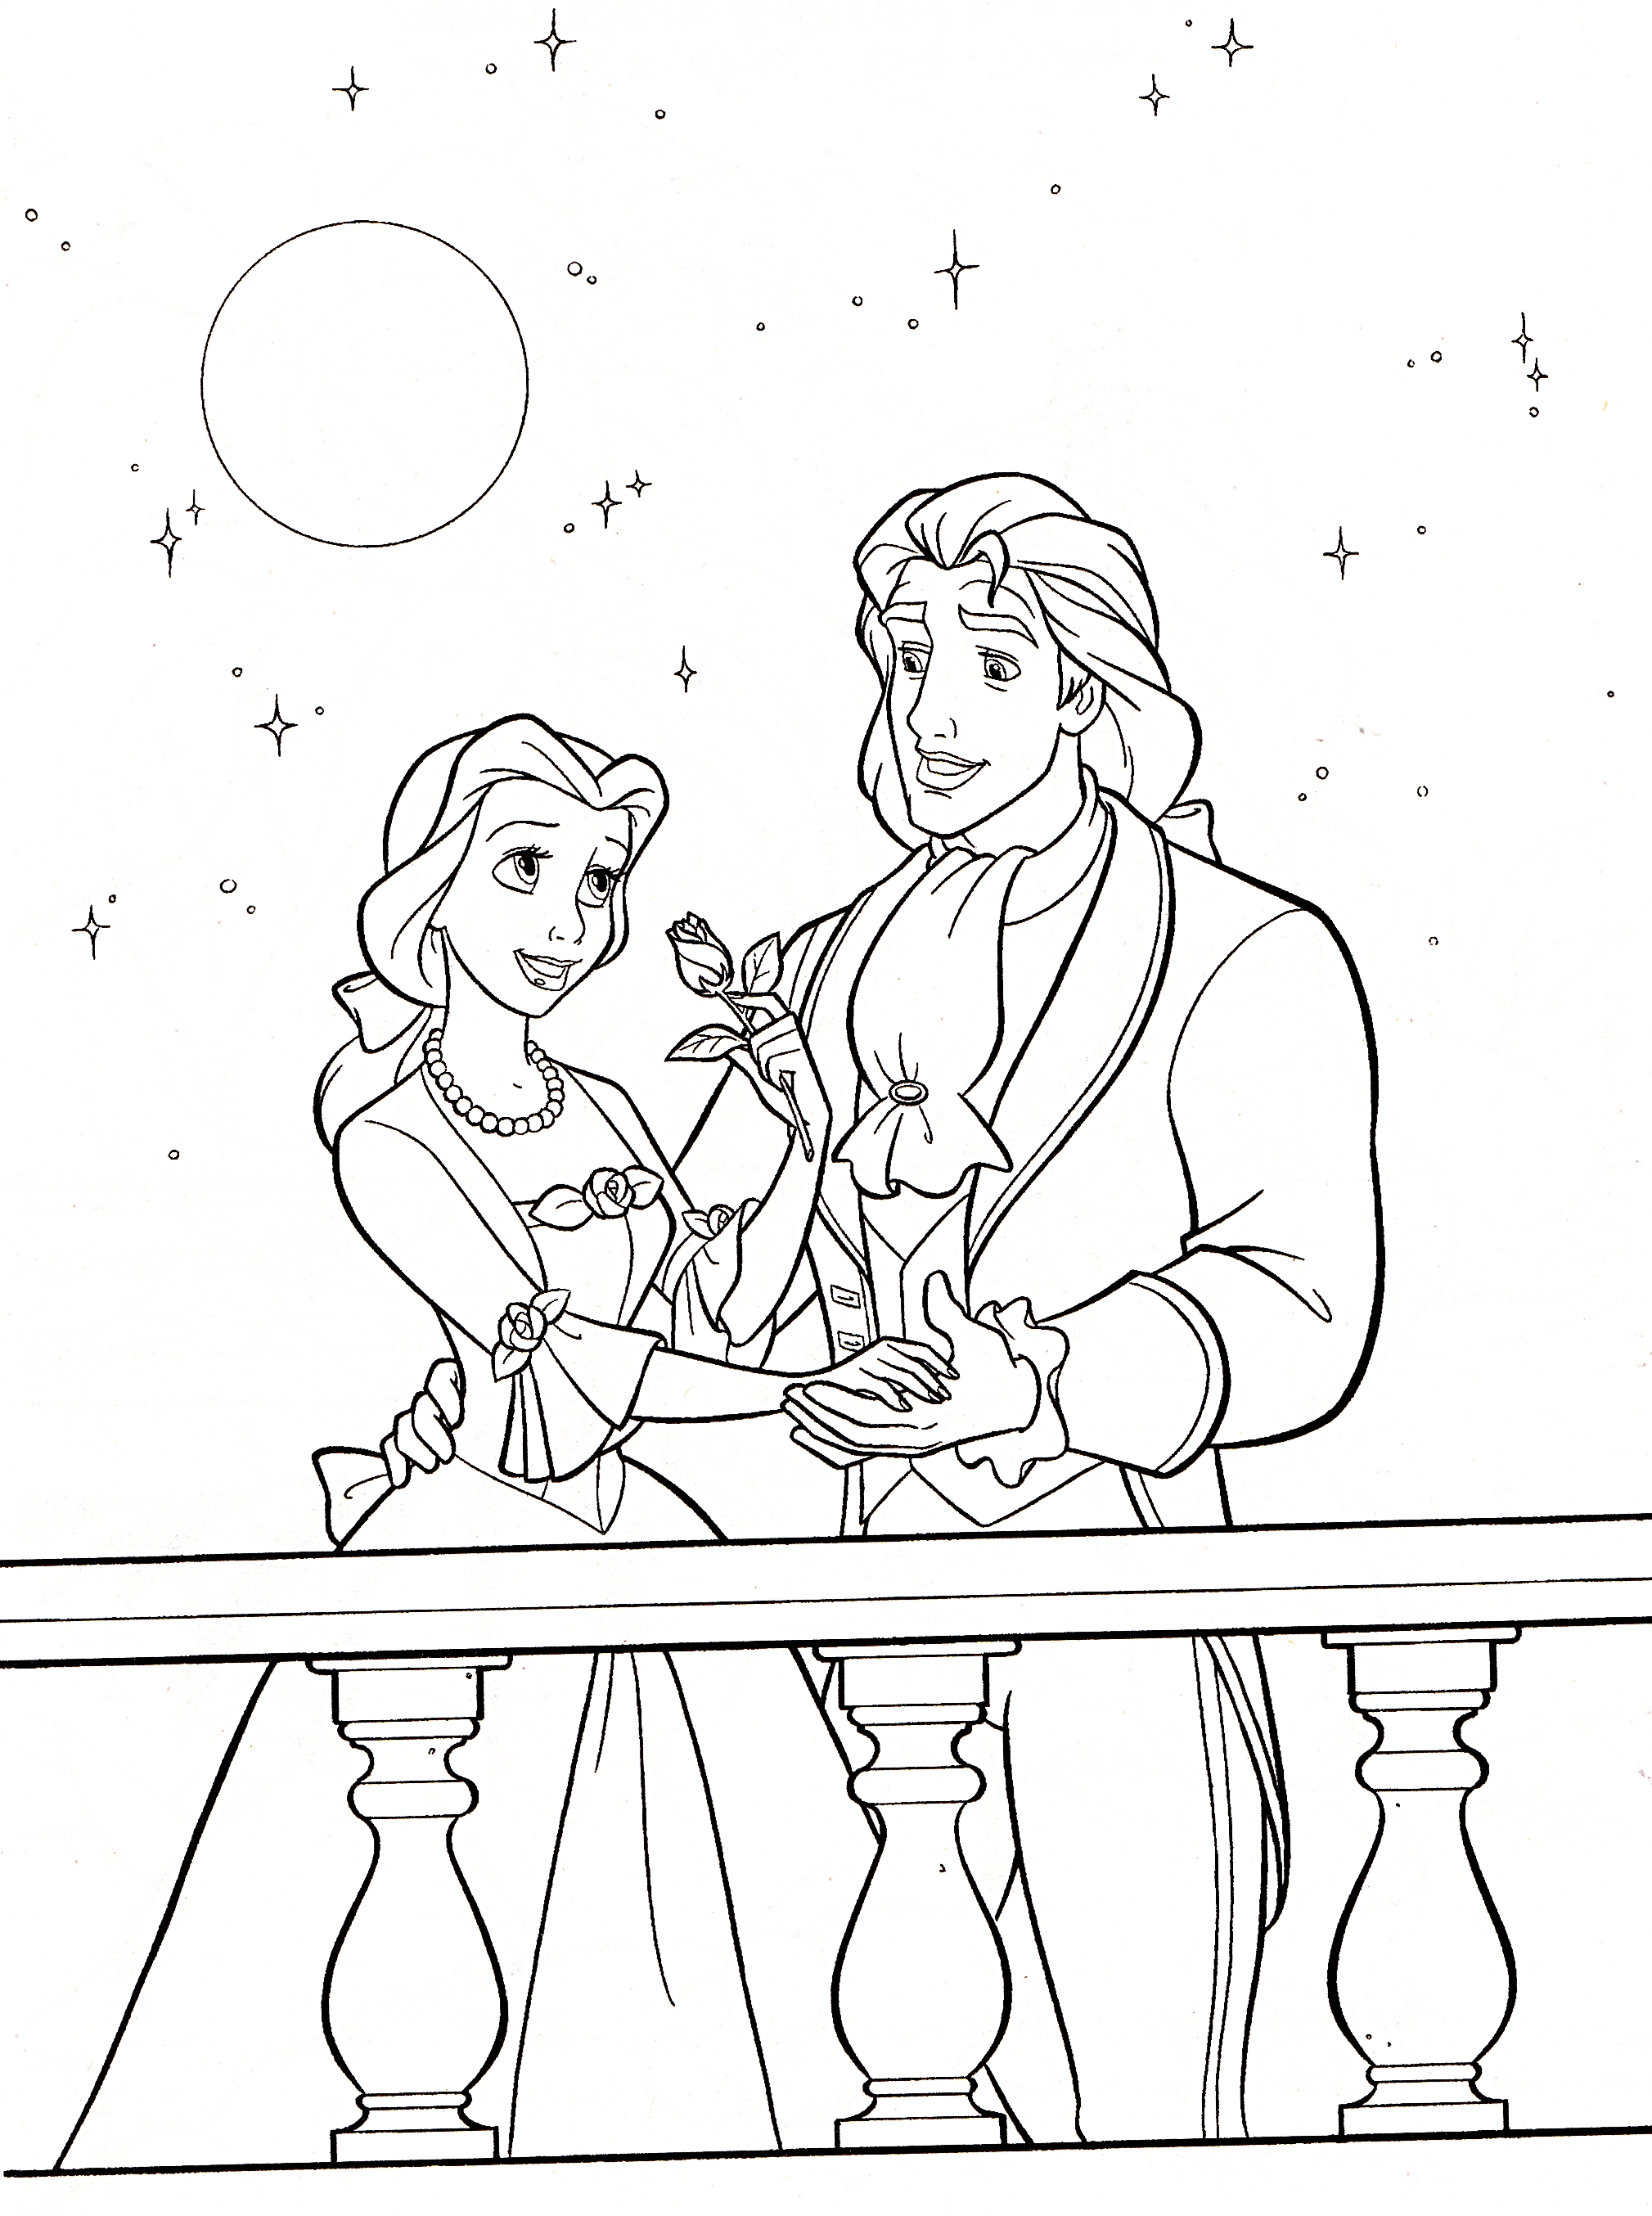 Walt Disney Characters Images Walt Disney Coloring Pages Princess And Prince Coloring Pages